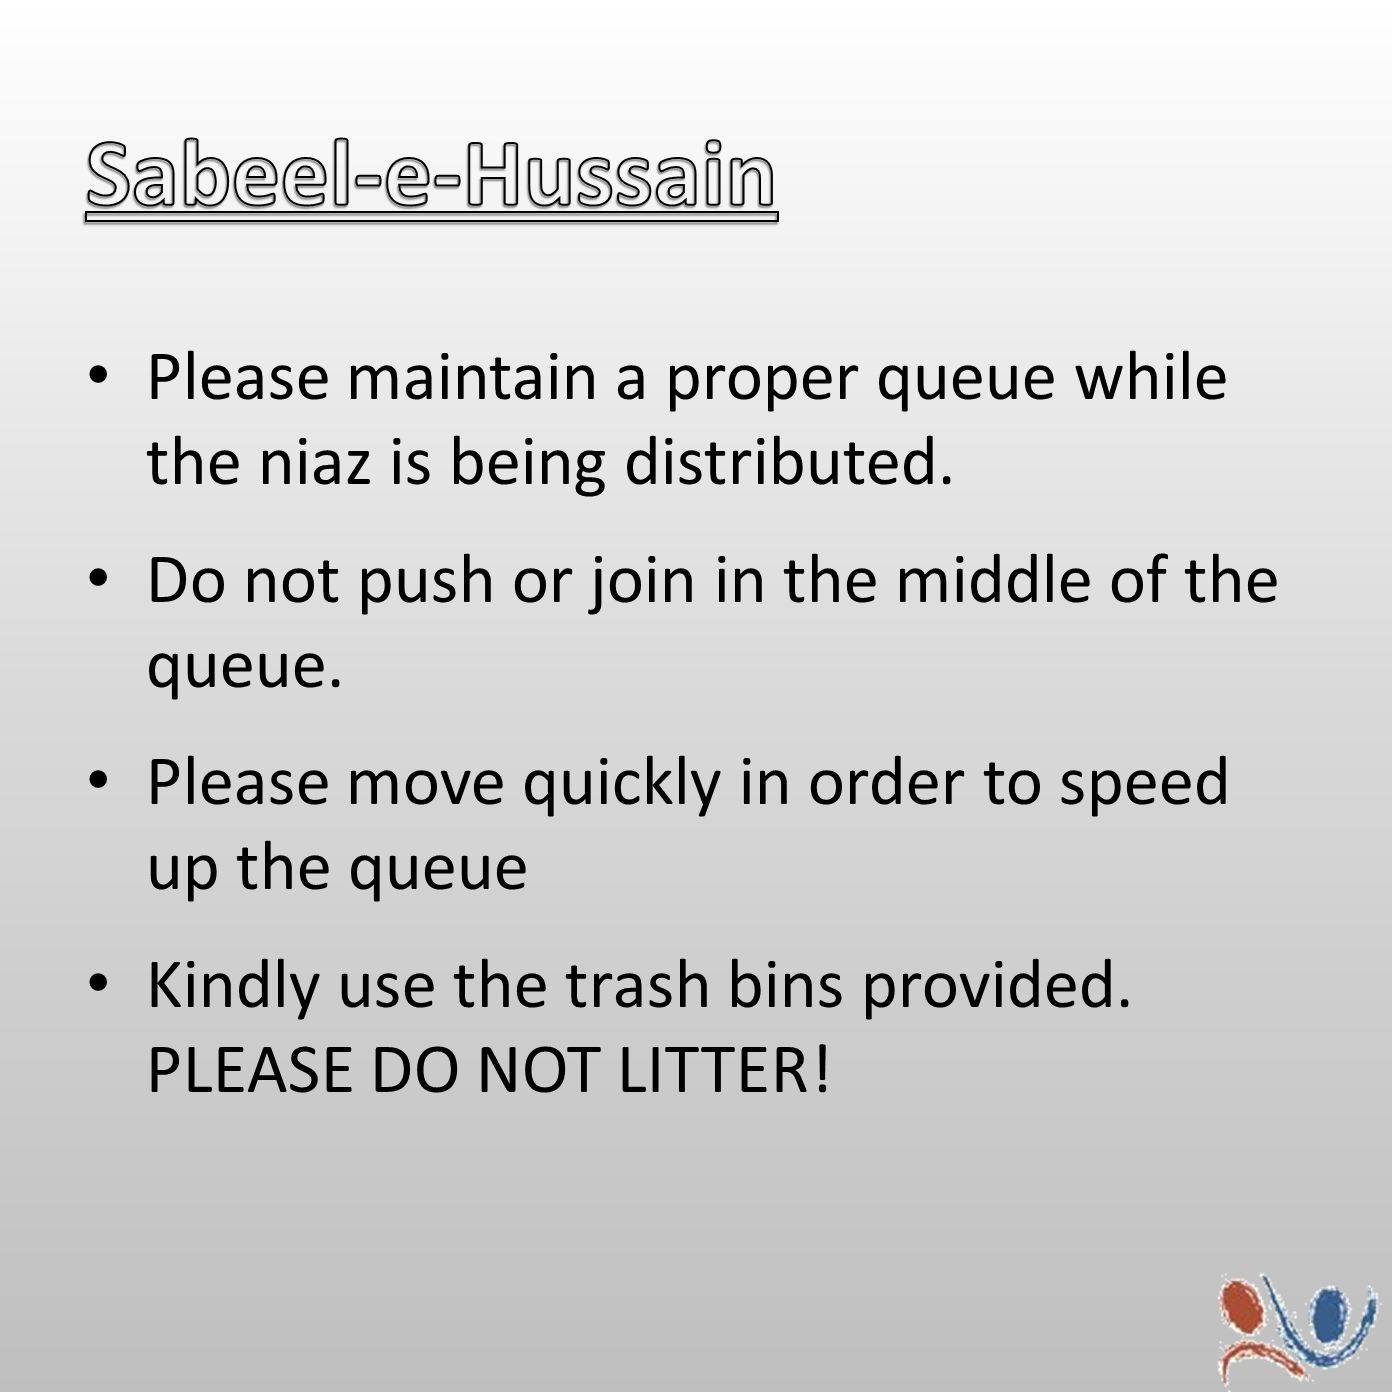 Please maintain a proper queue while the niaz is being distributed.